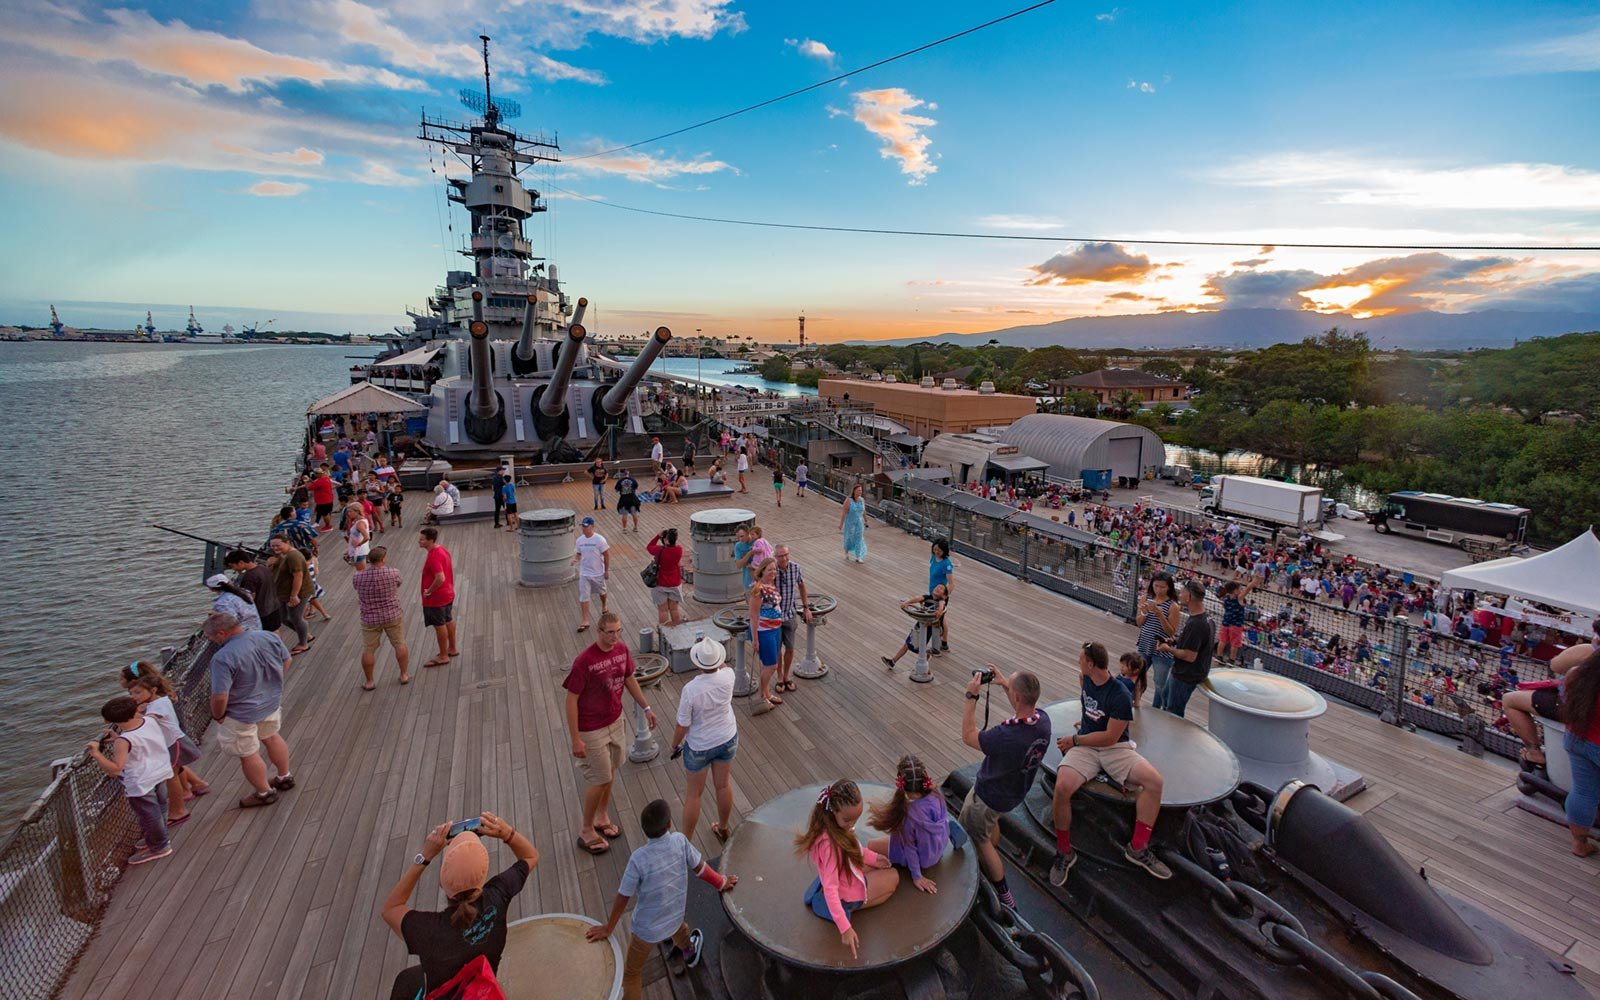 USS Missouri, Picnic on the Pier, Oahu, Hawaii